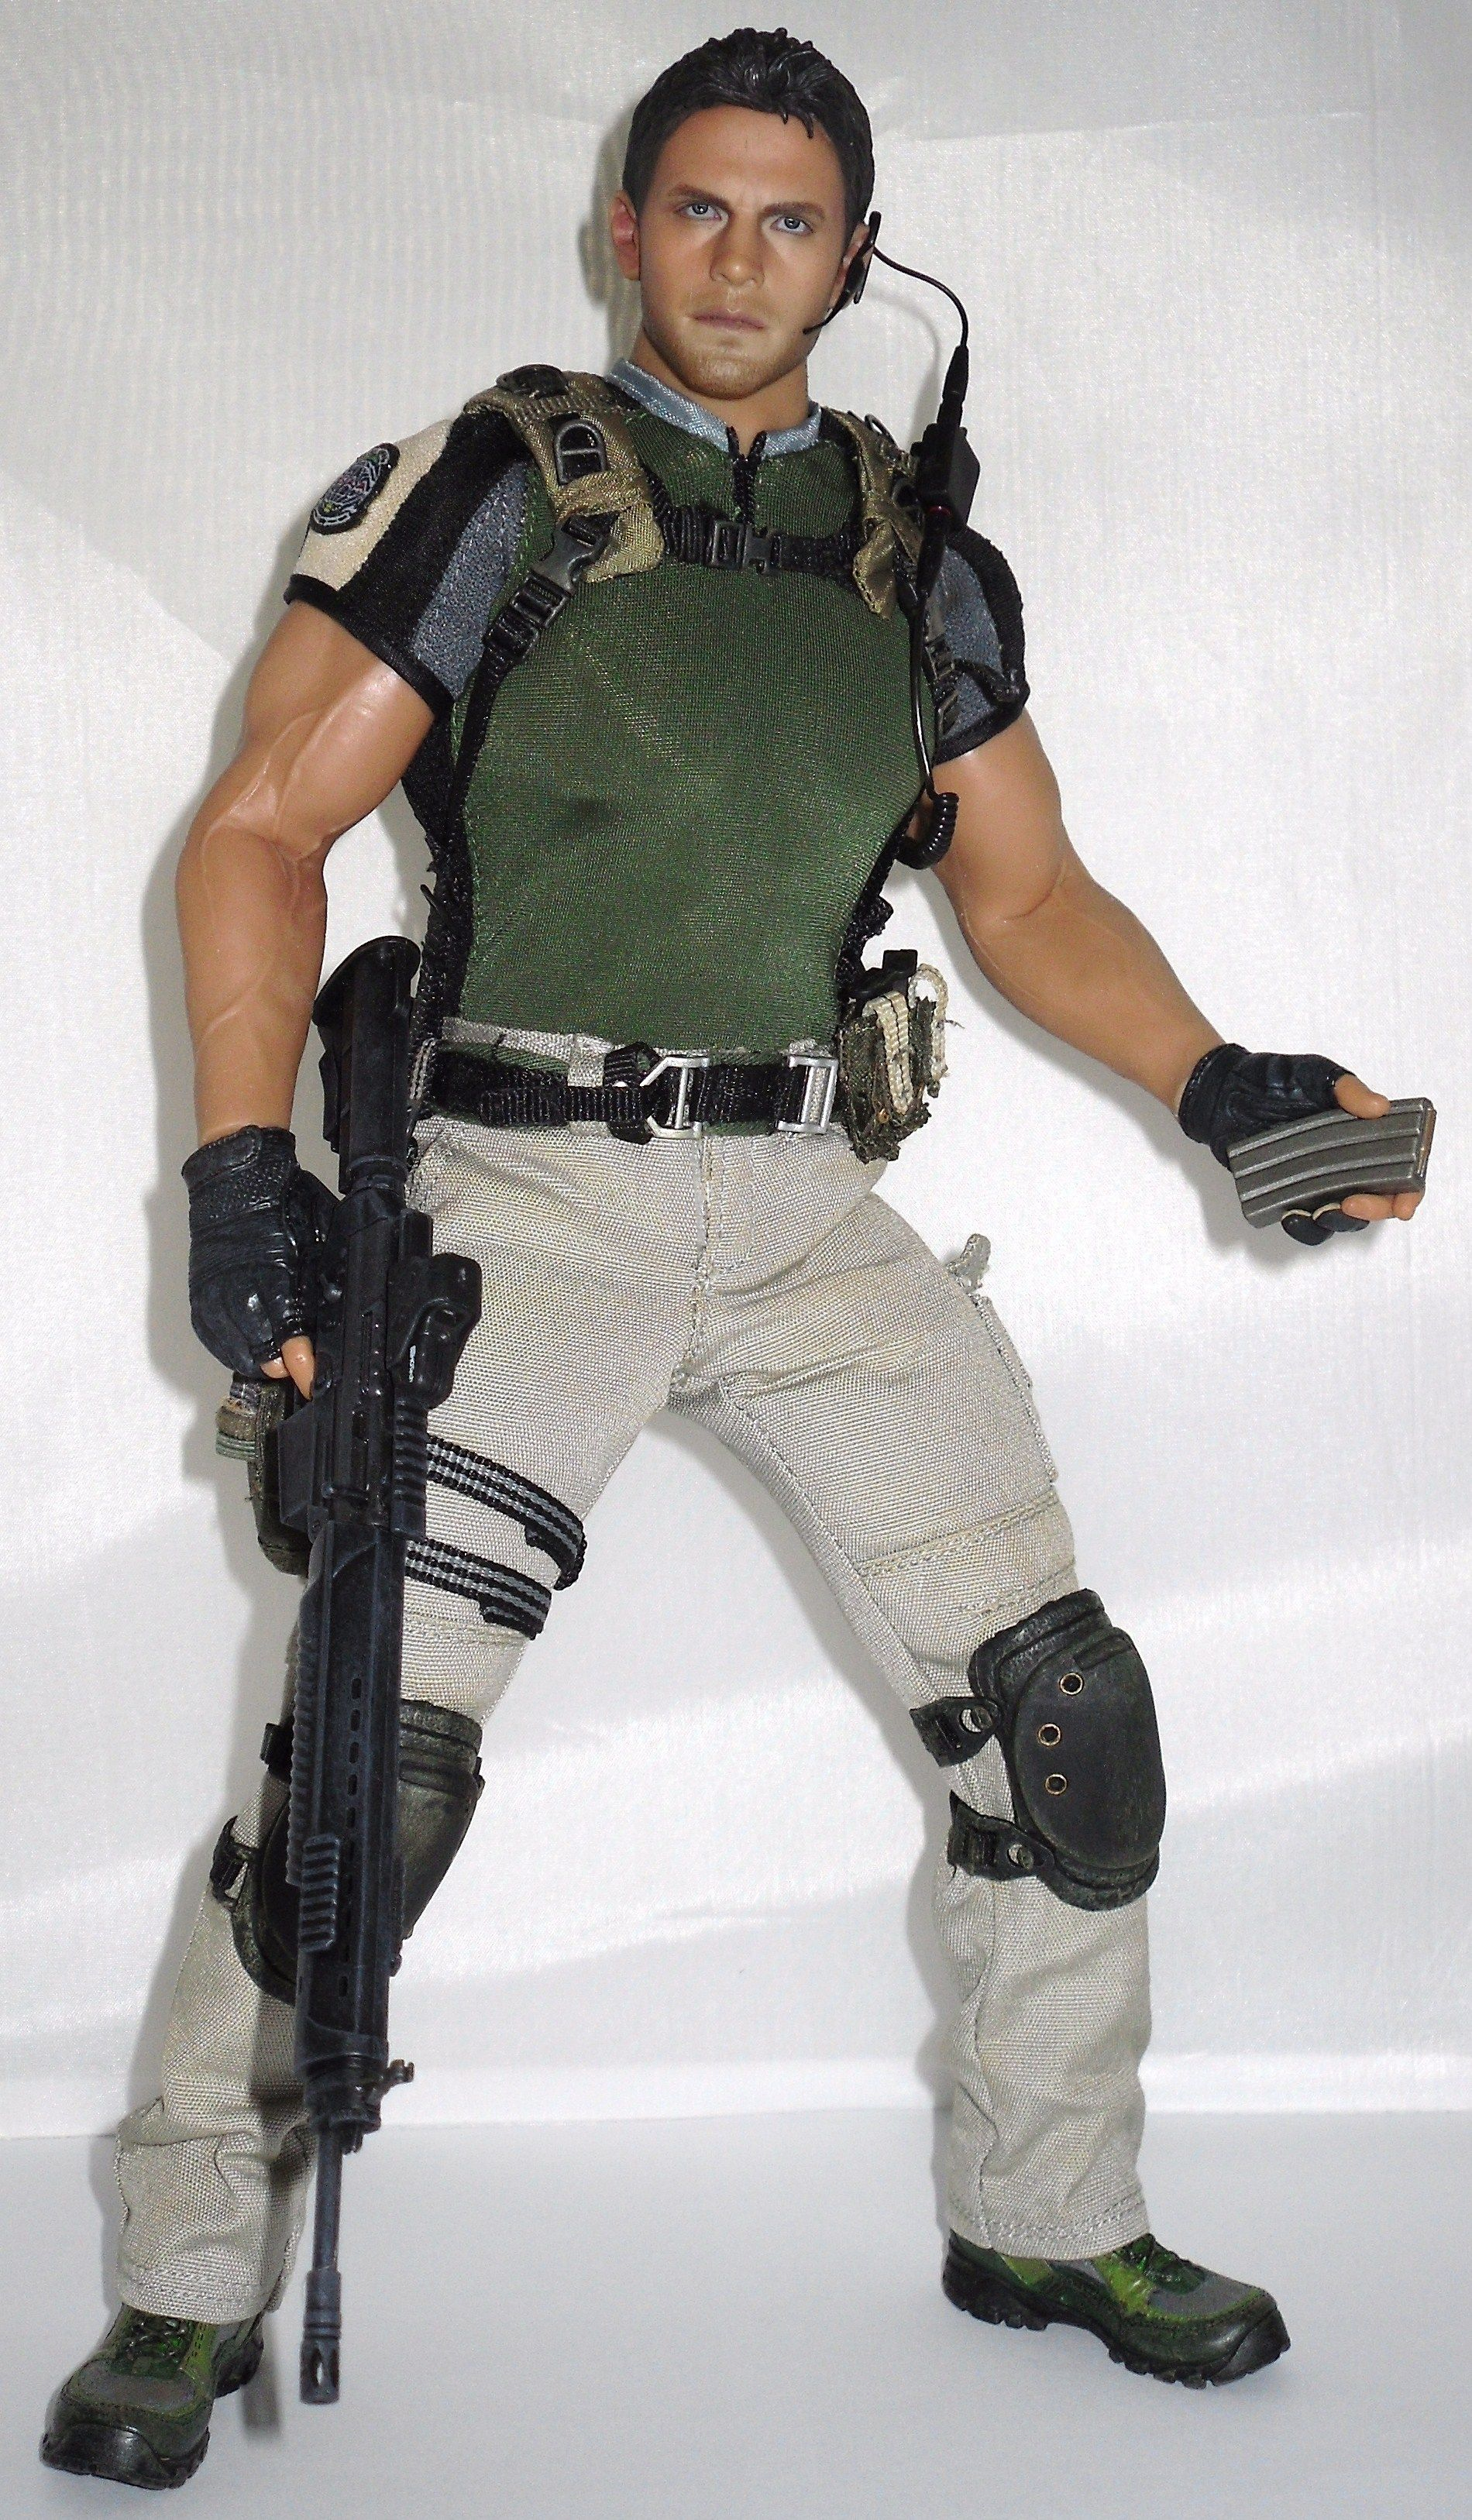 Chris Redfield 1:6 scale figure from Resident Evil 5 videogame